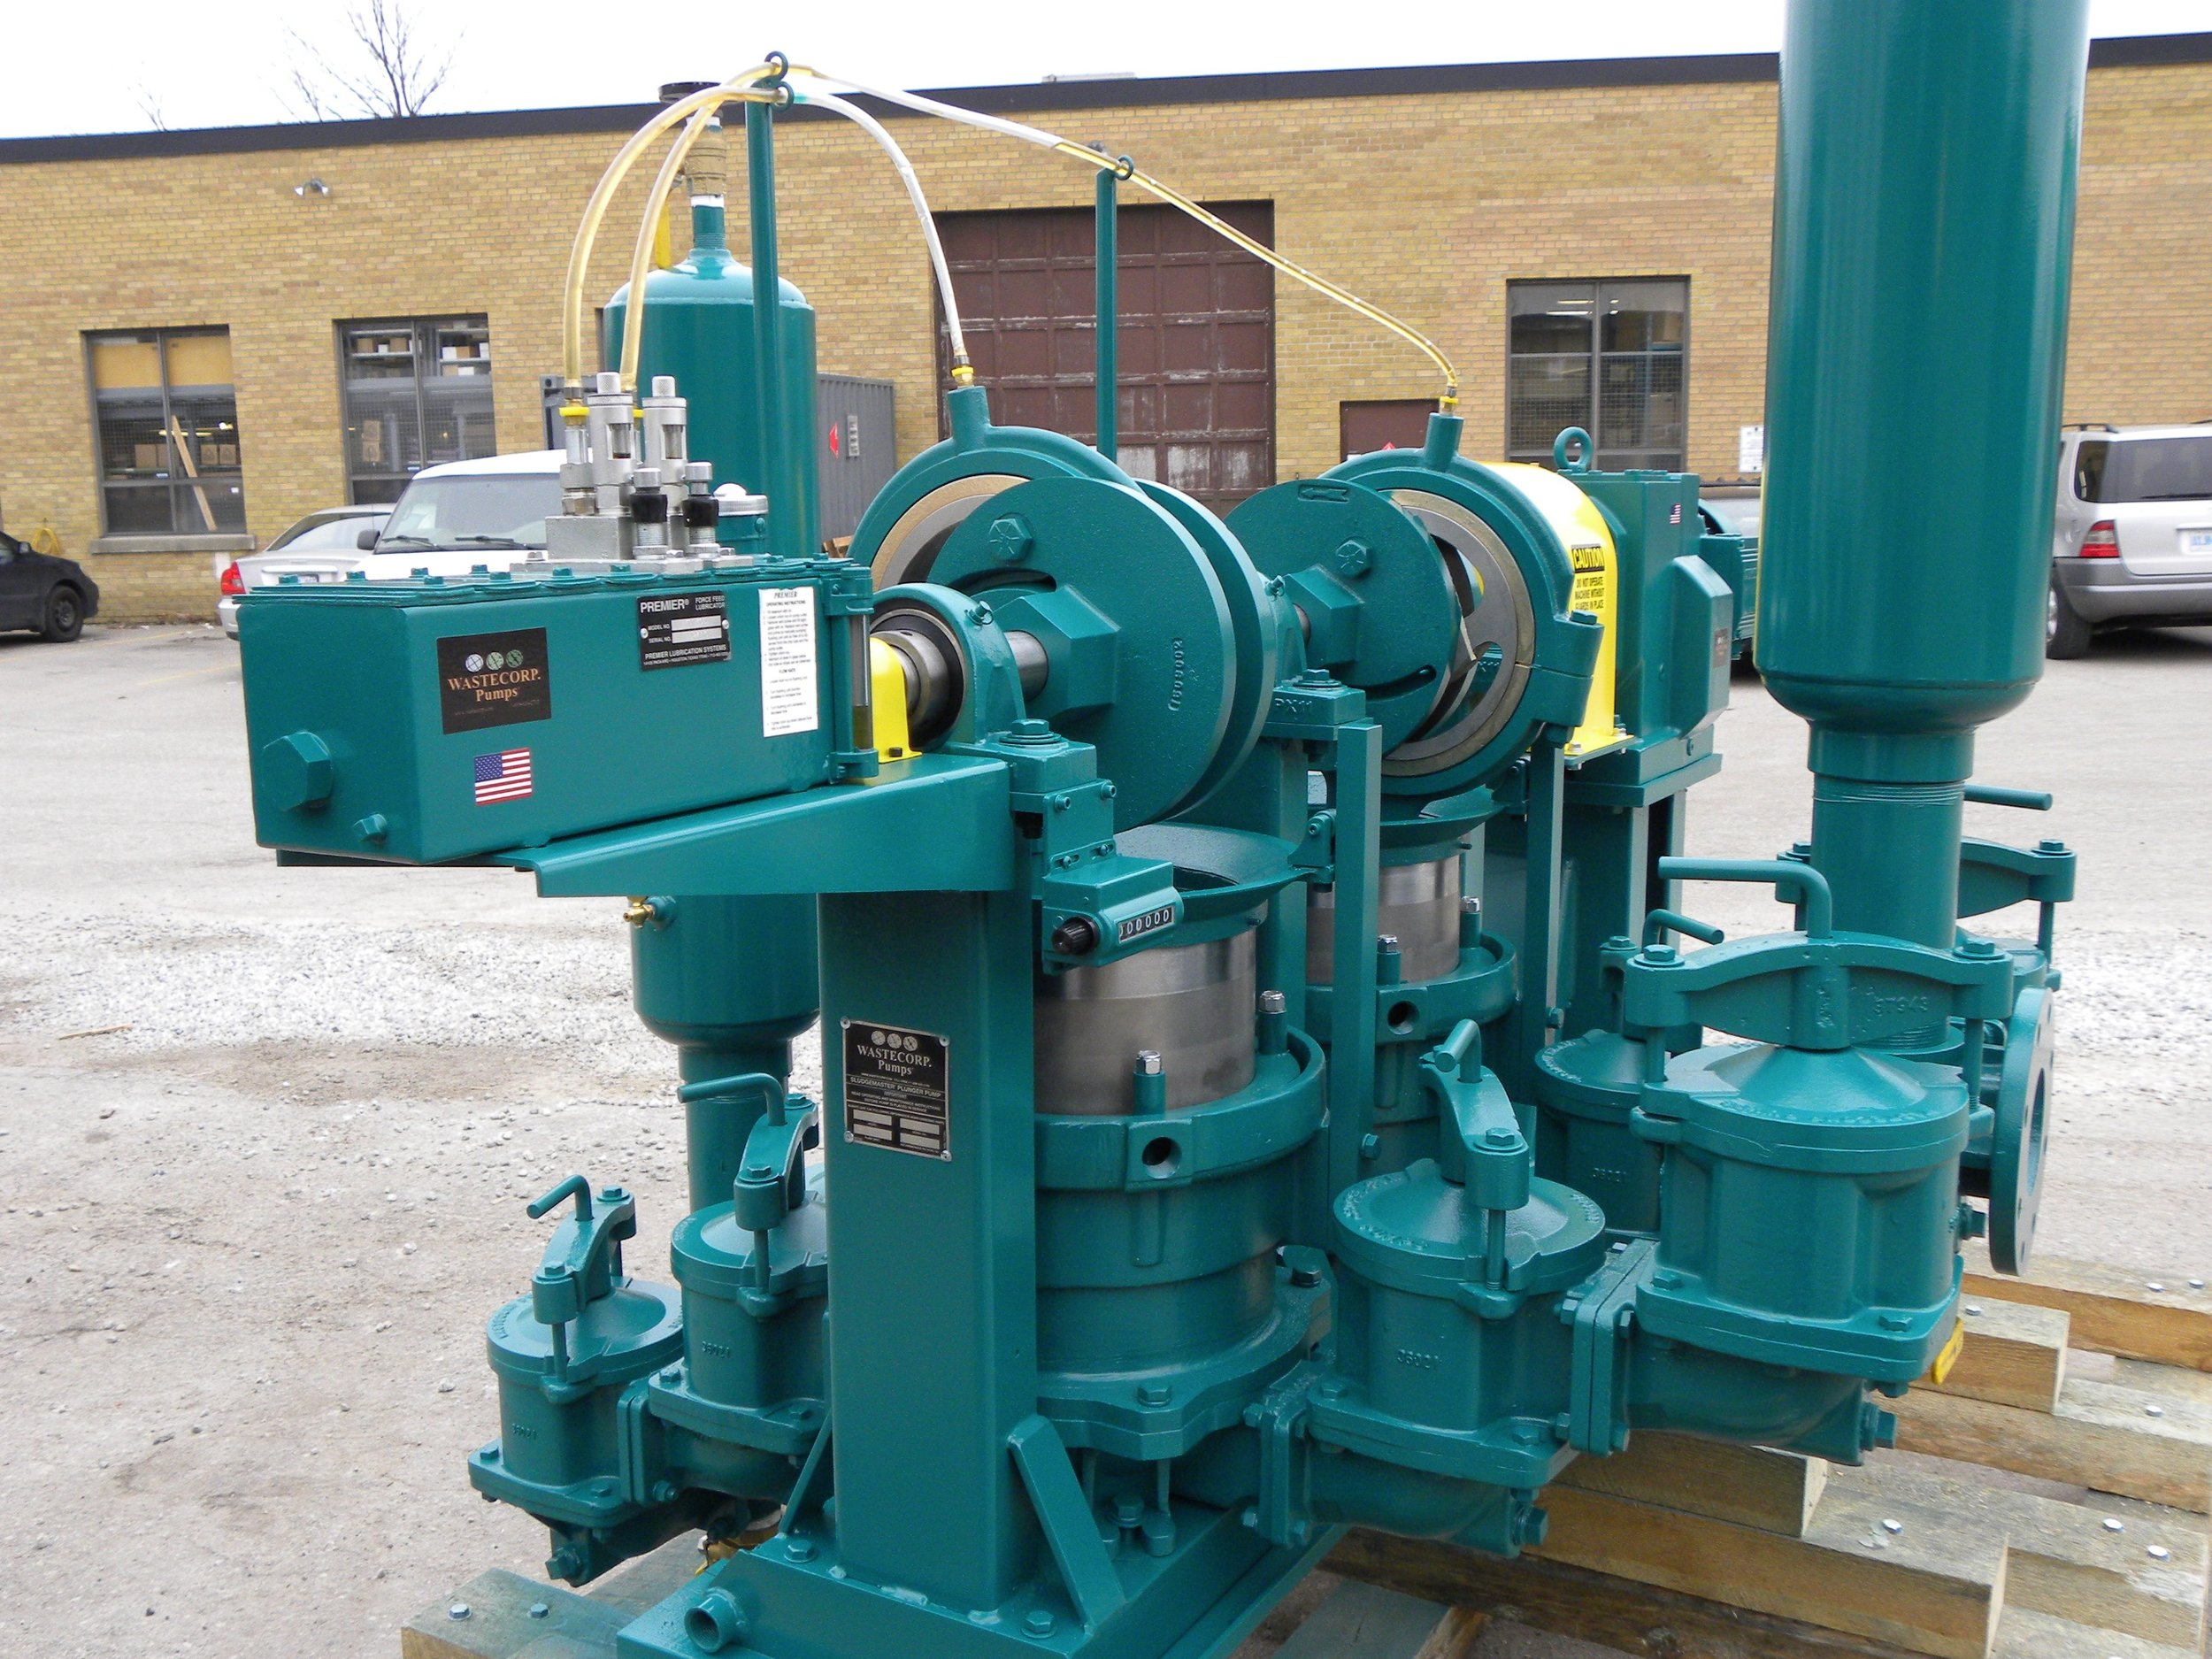 HEAVY DUTY PROGRESSIVE CAVITY PISTON PUMPS  For customers that are focusing on producing an organic slurry, we provide a variety of pumping options for you to choose from. We can assist in pump